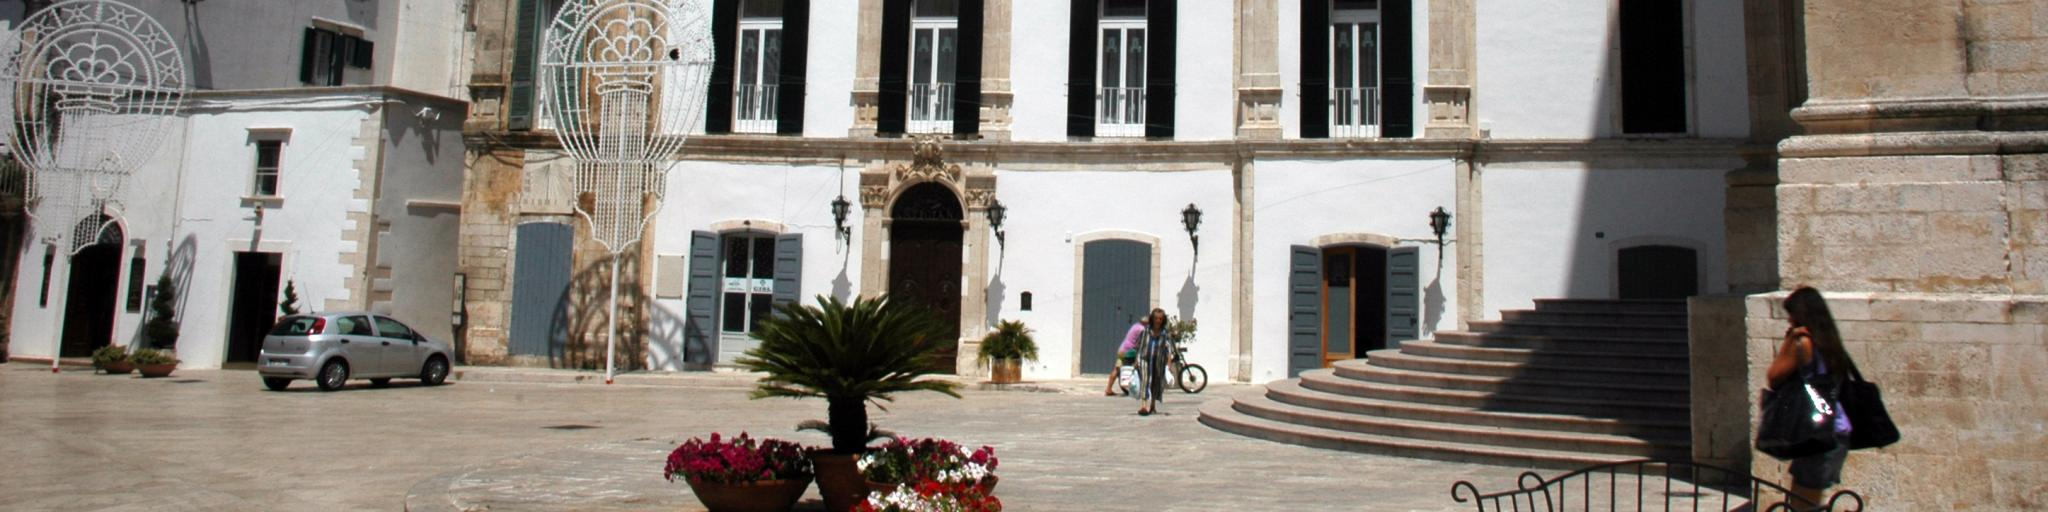 The town of Martina Franca in Italy's Puglia region on a sunny day